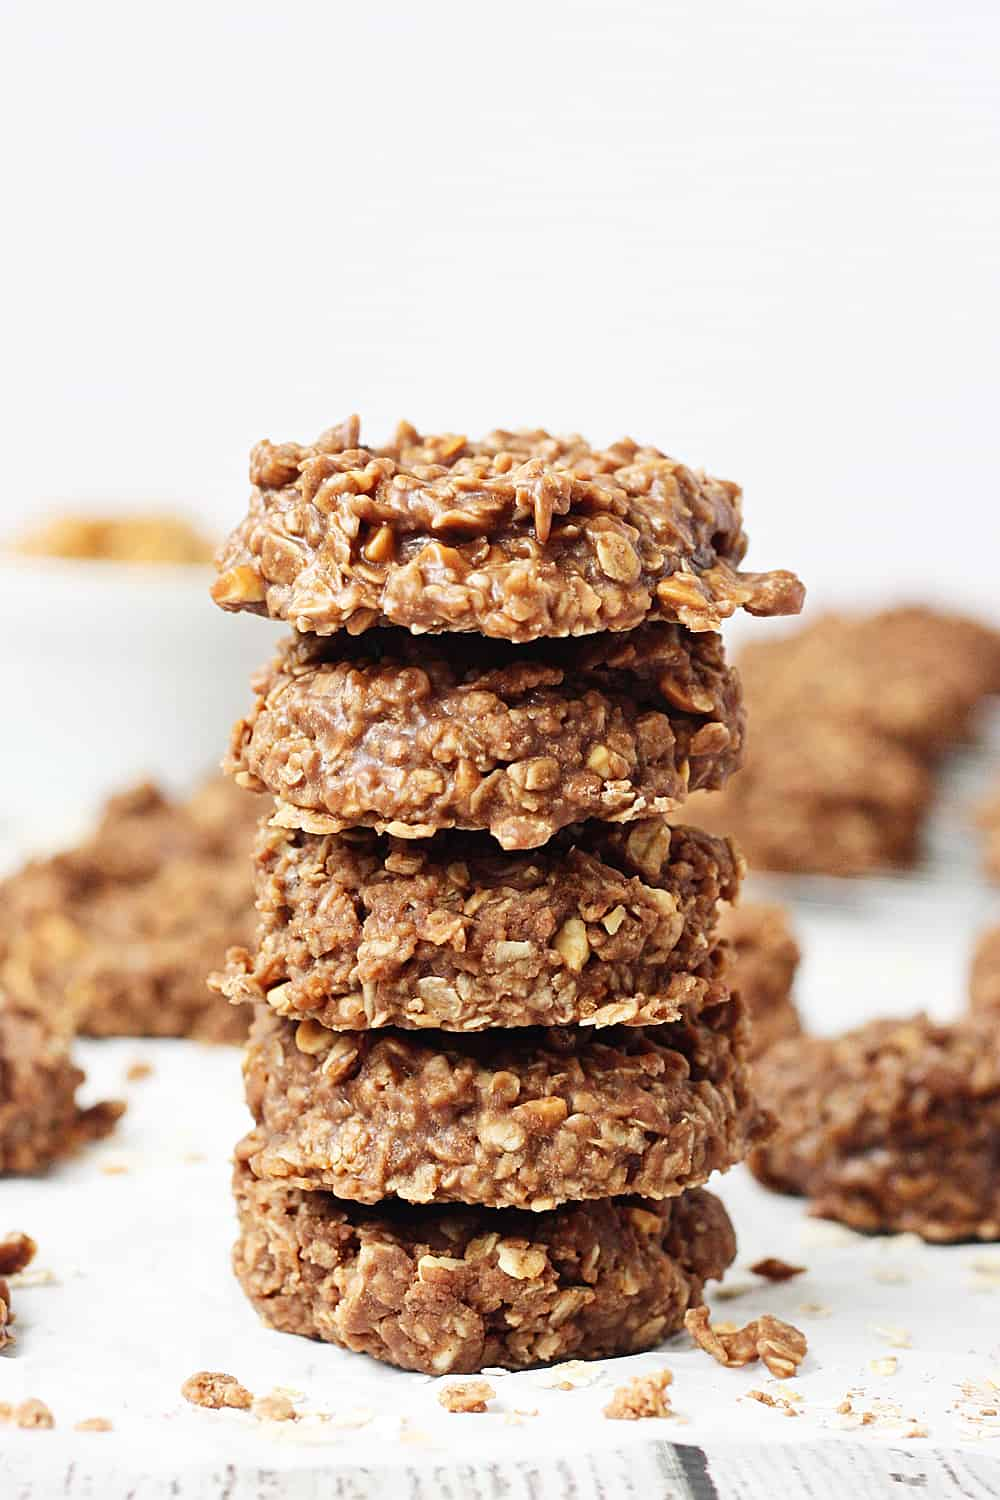 Crunchy Peanut Butter No-Bake Cookies